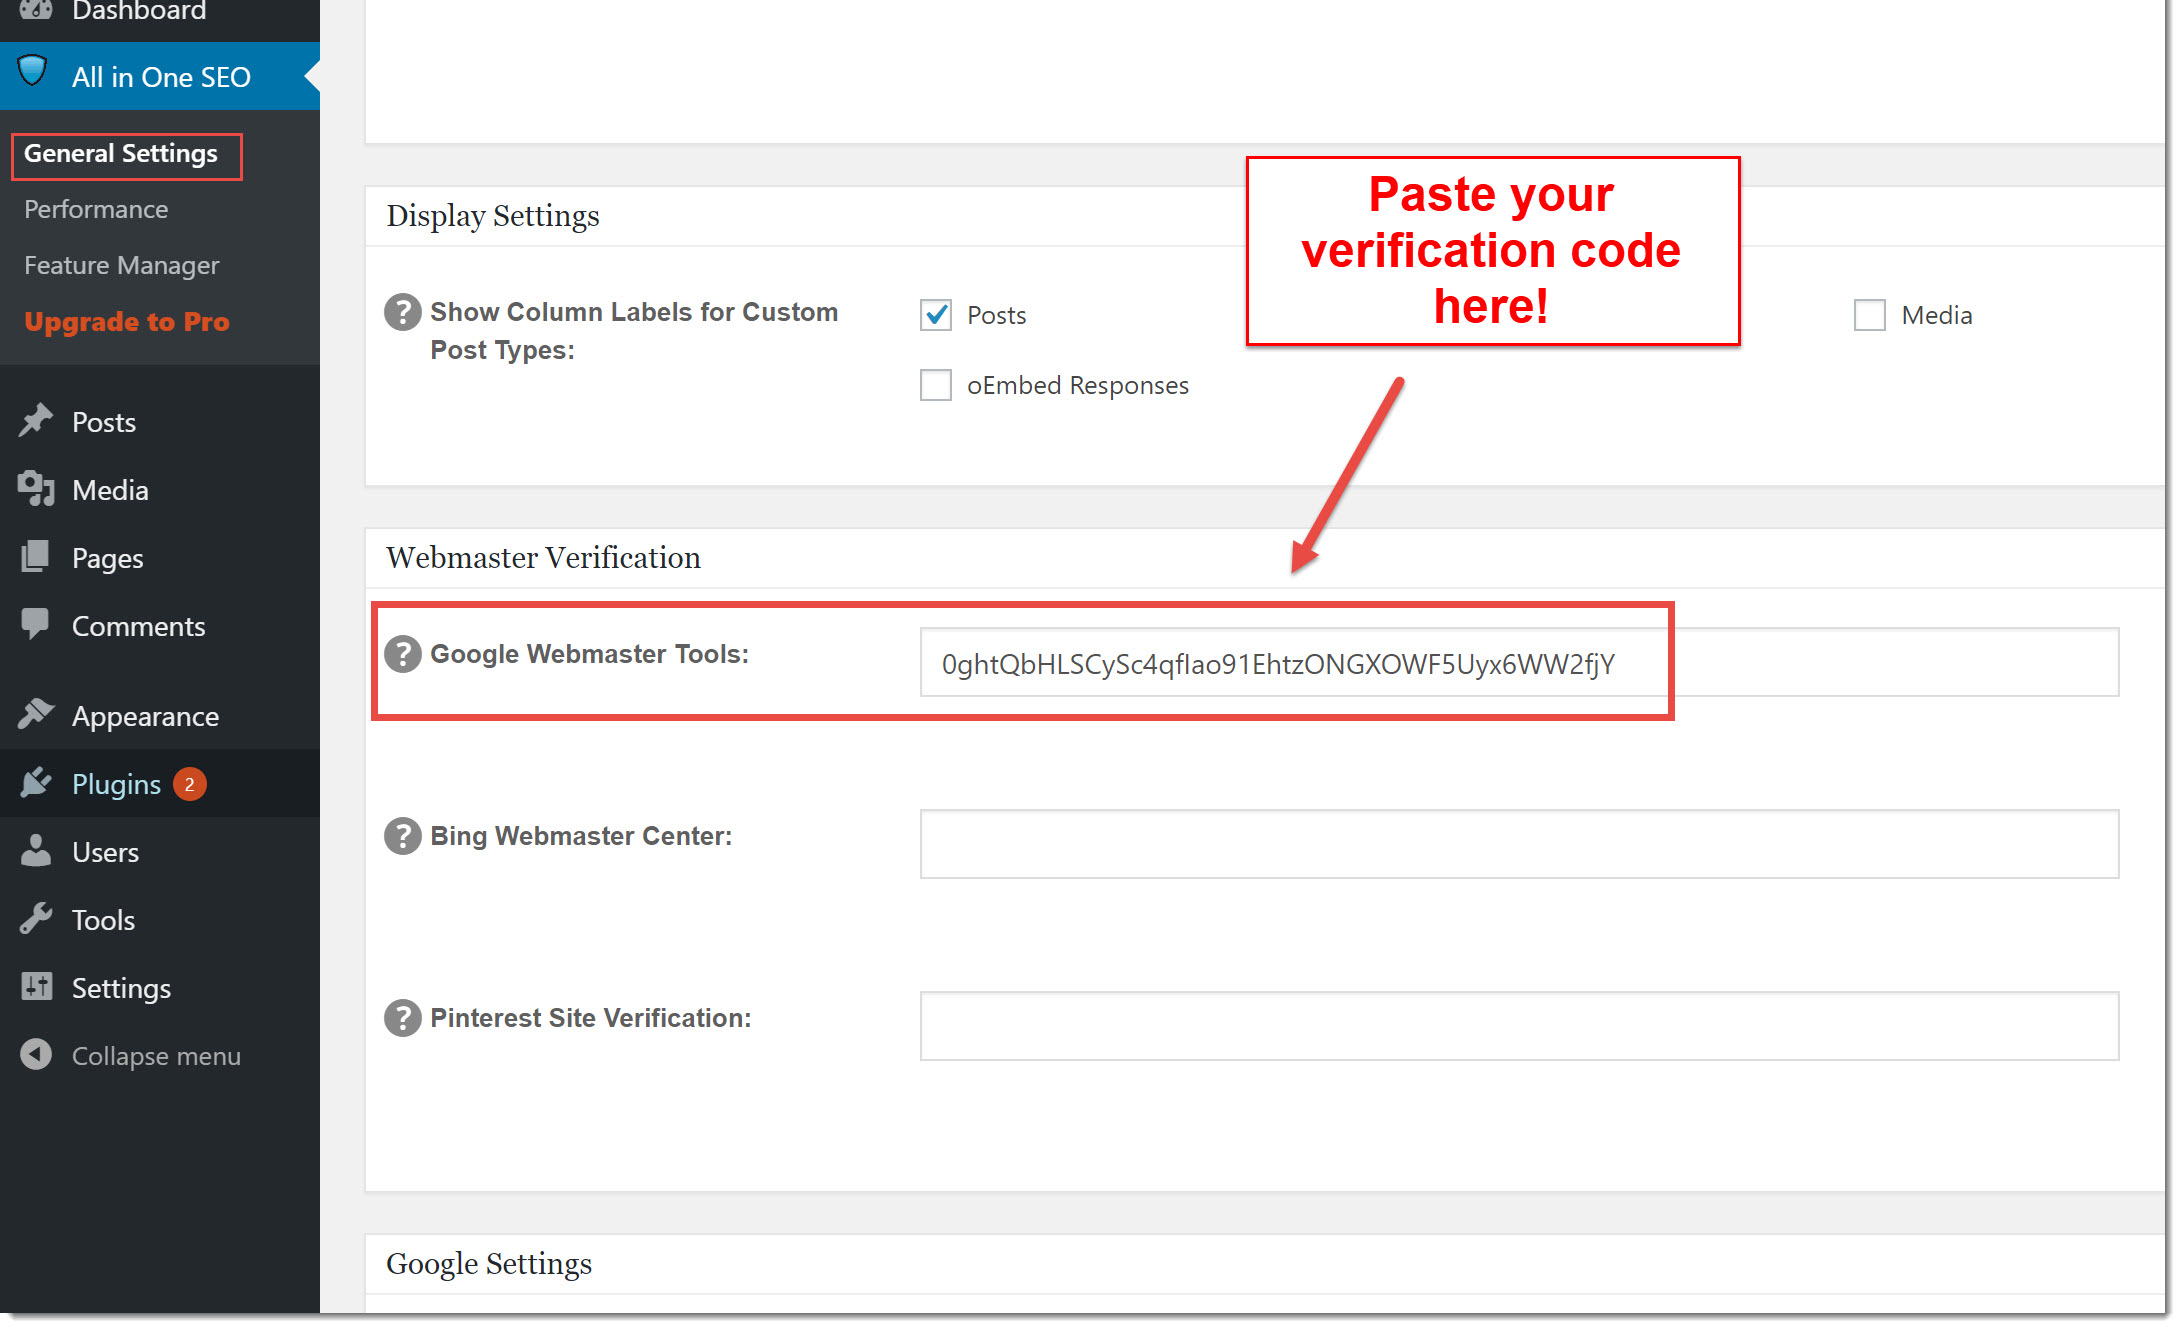 All in one seo webmaster verification